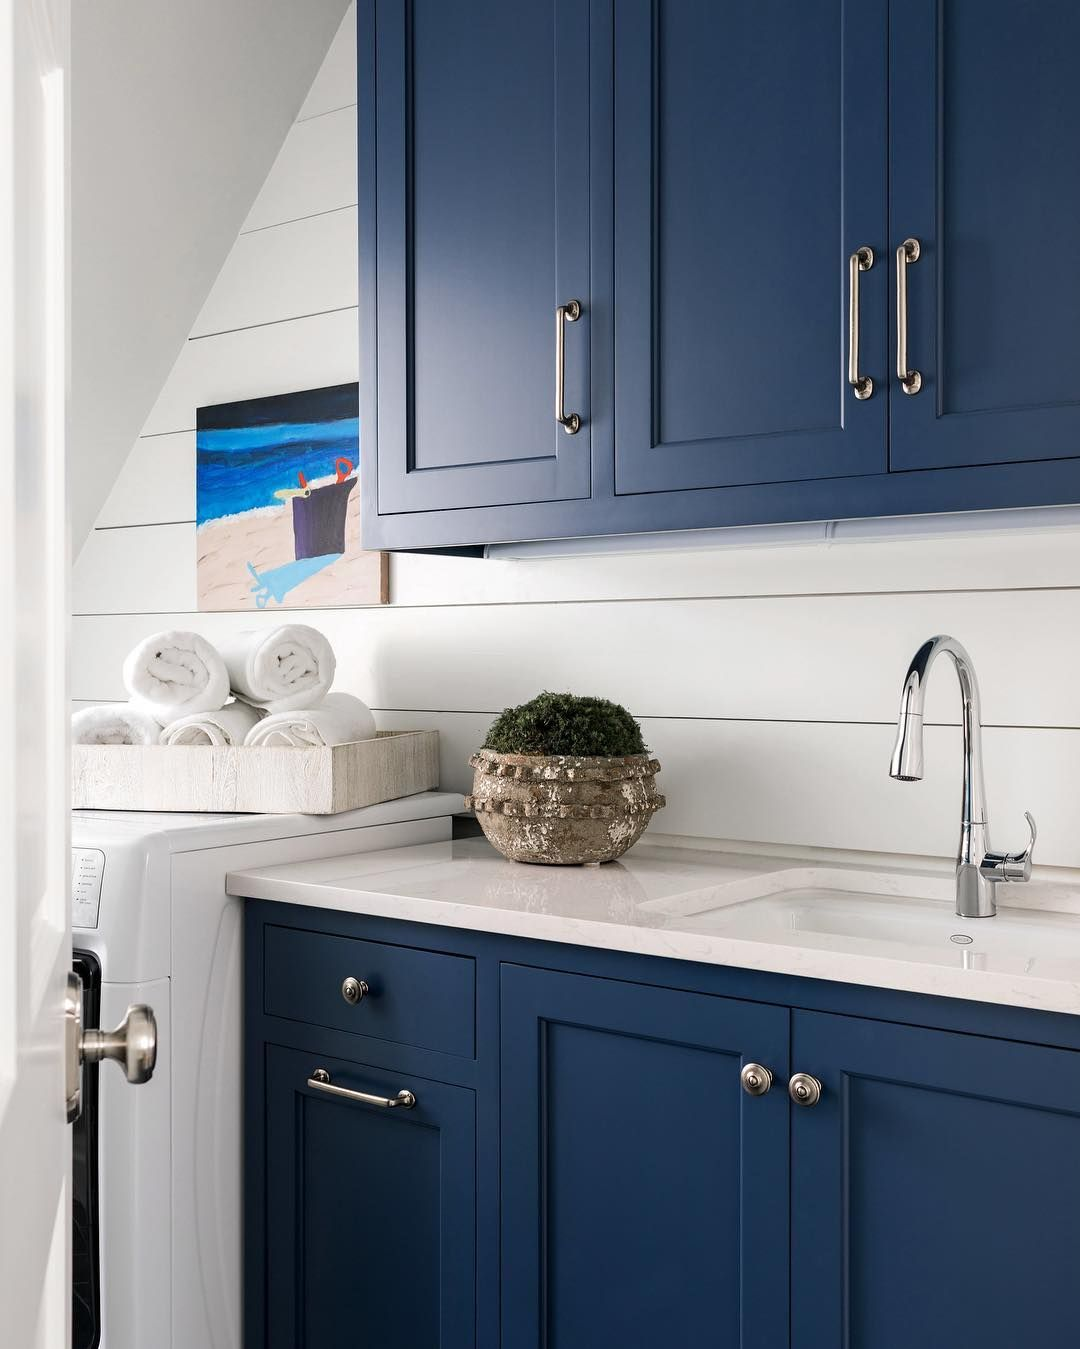 What Is Best Paint For Kitchen Cabinets: Sherwin Williams Indigo Via Sherry Hart.